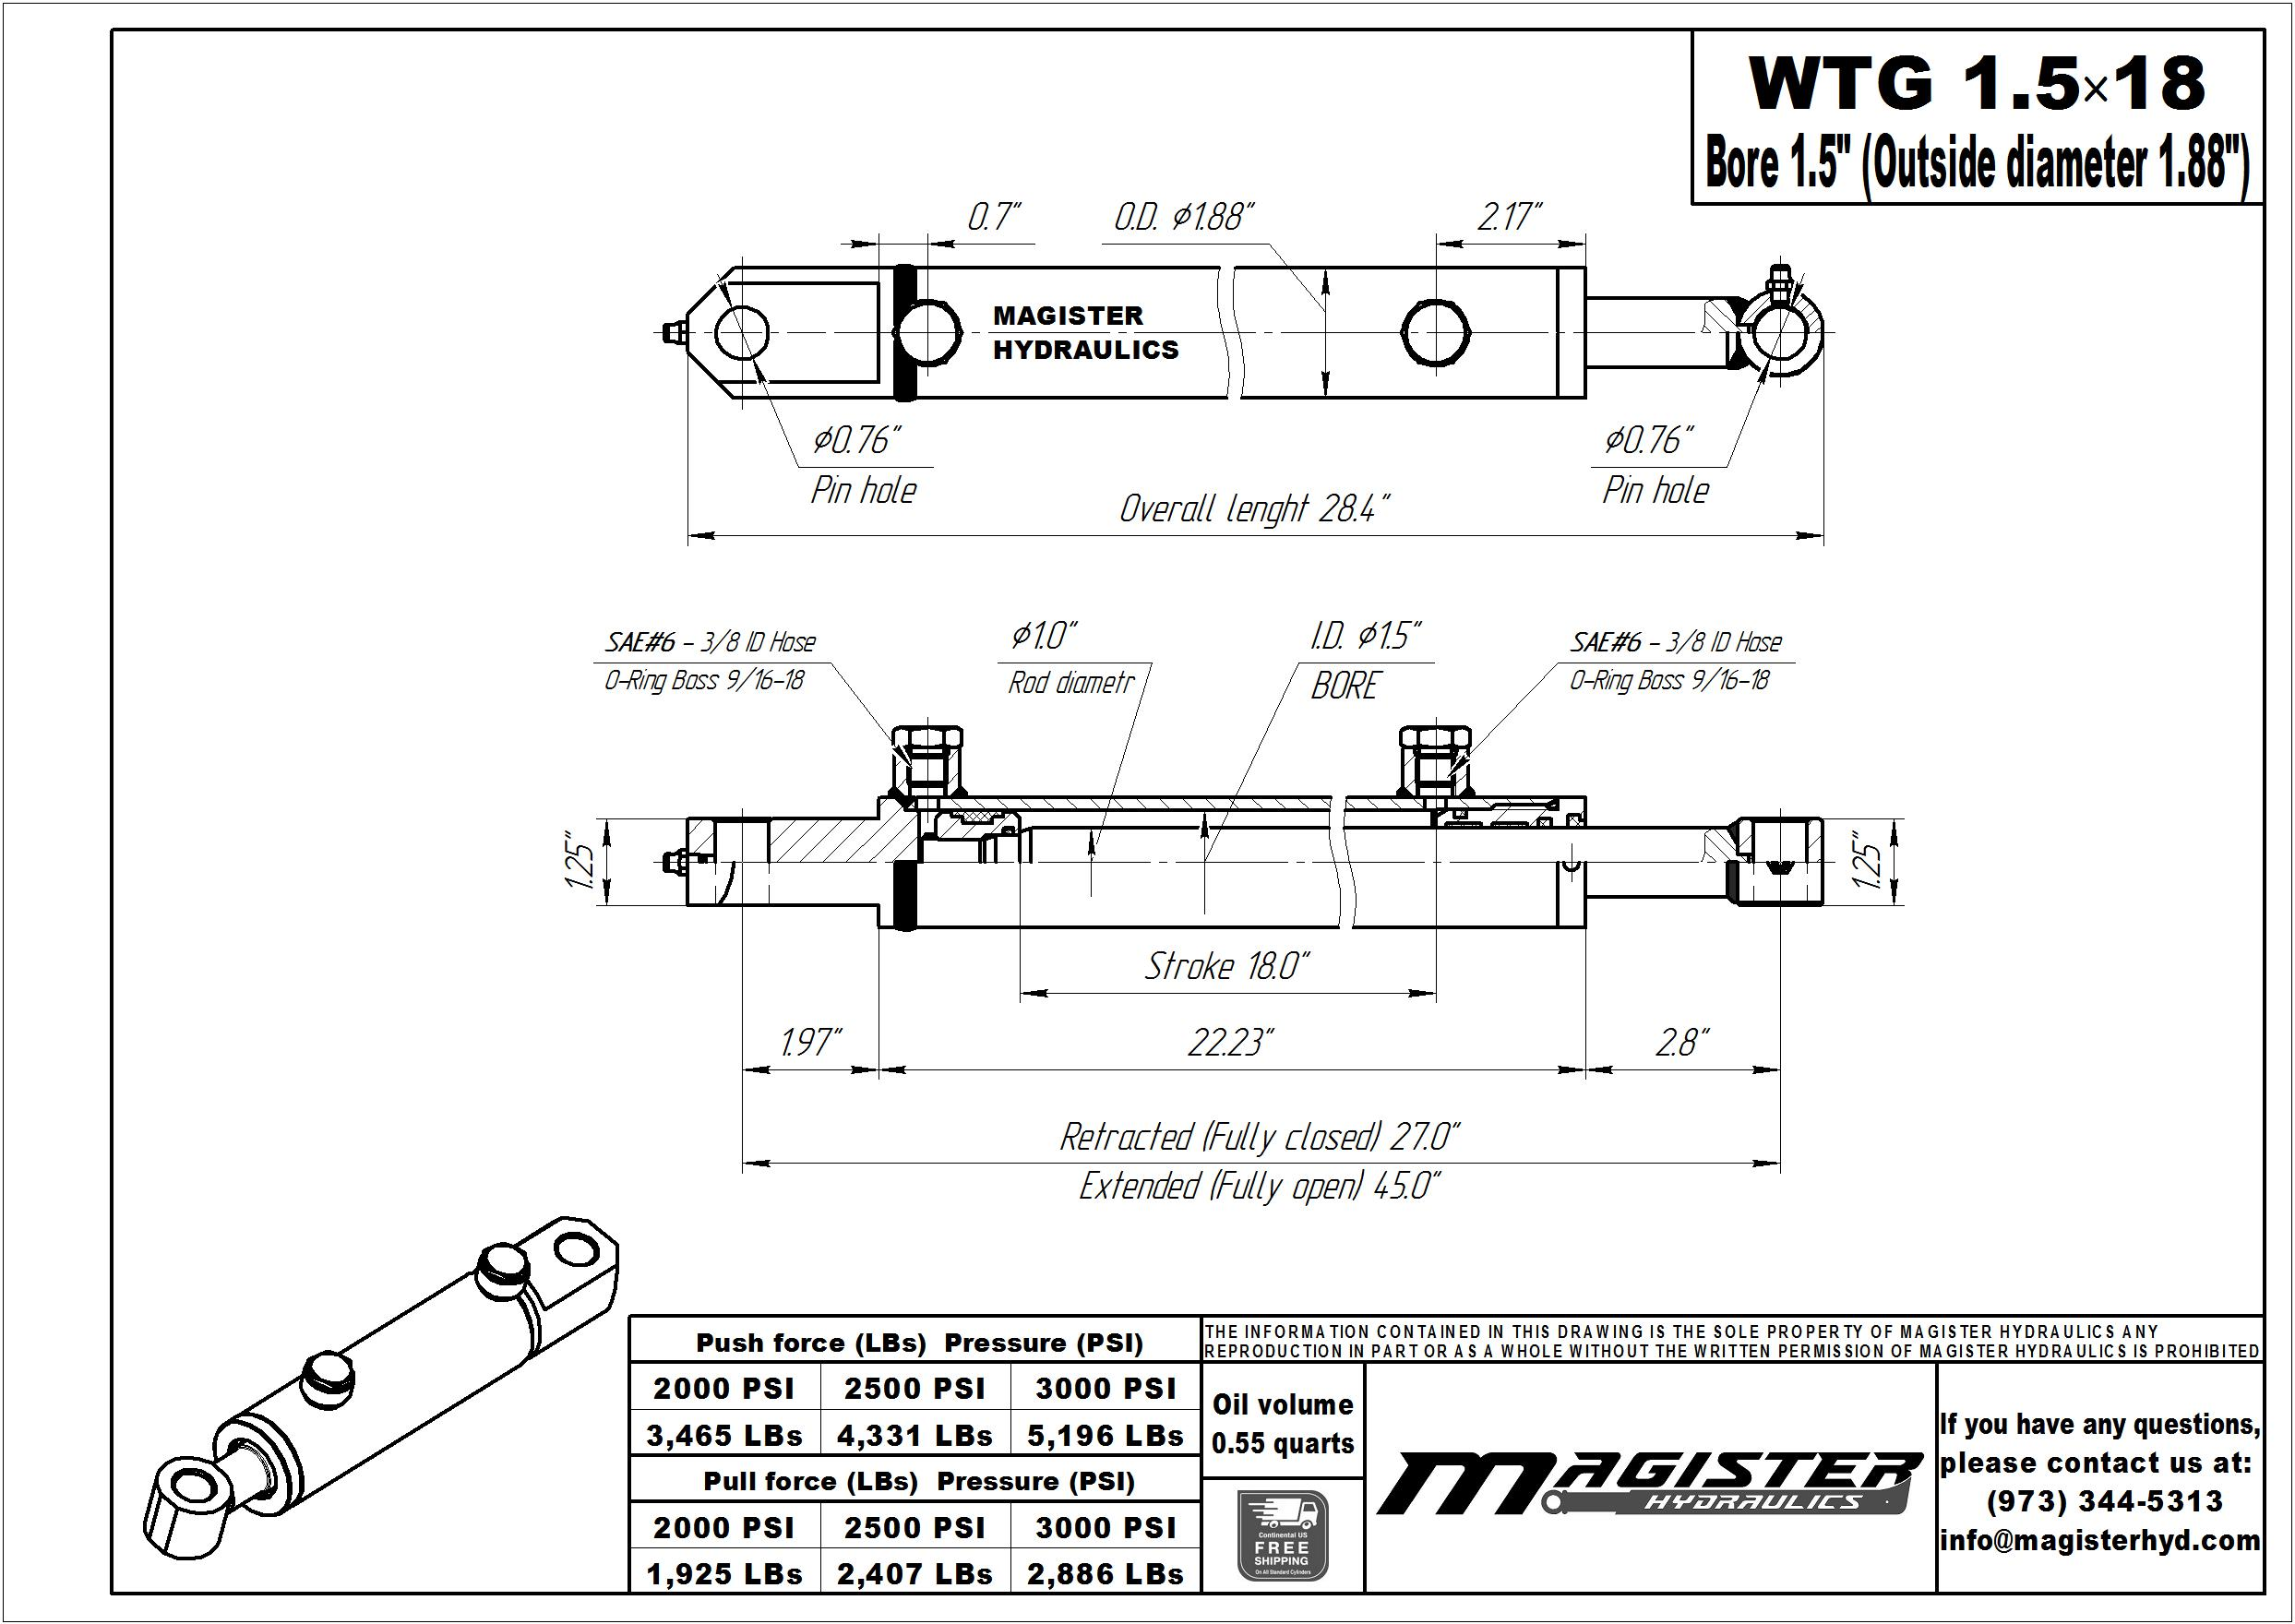 1.5 bore x 18 stroke hydraulic cylinder, welded tang double acting cylinder | Magister Hydraulics